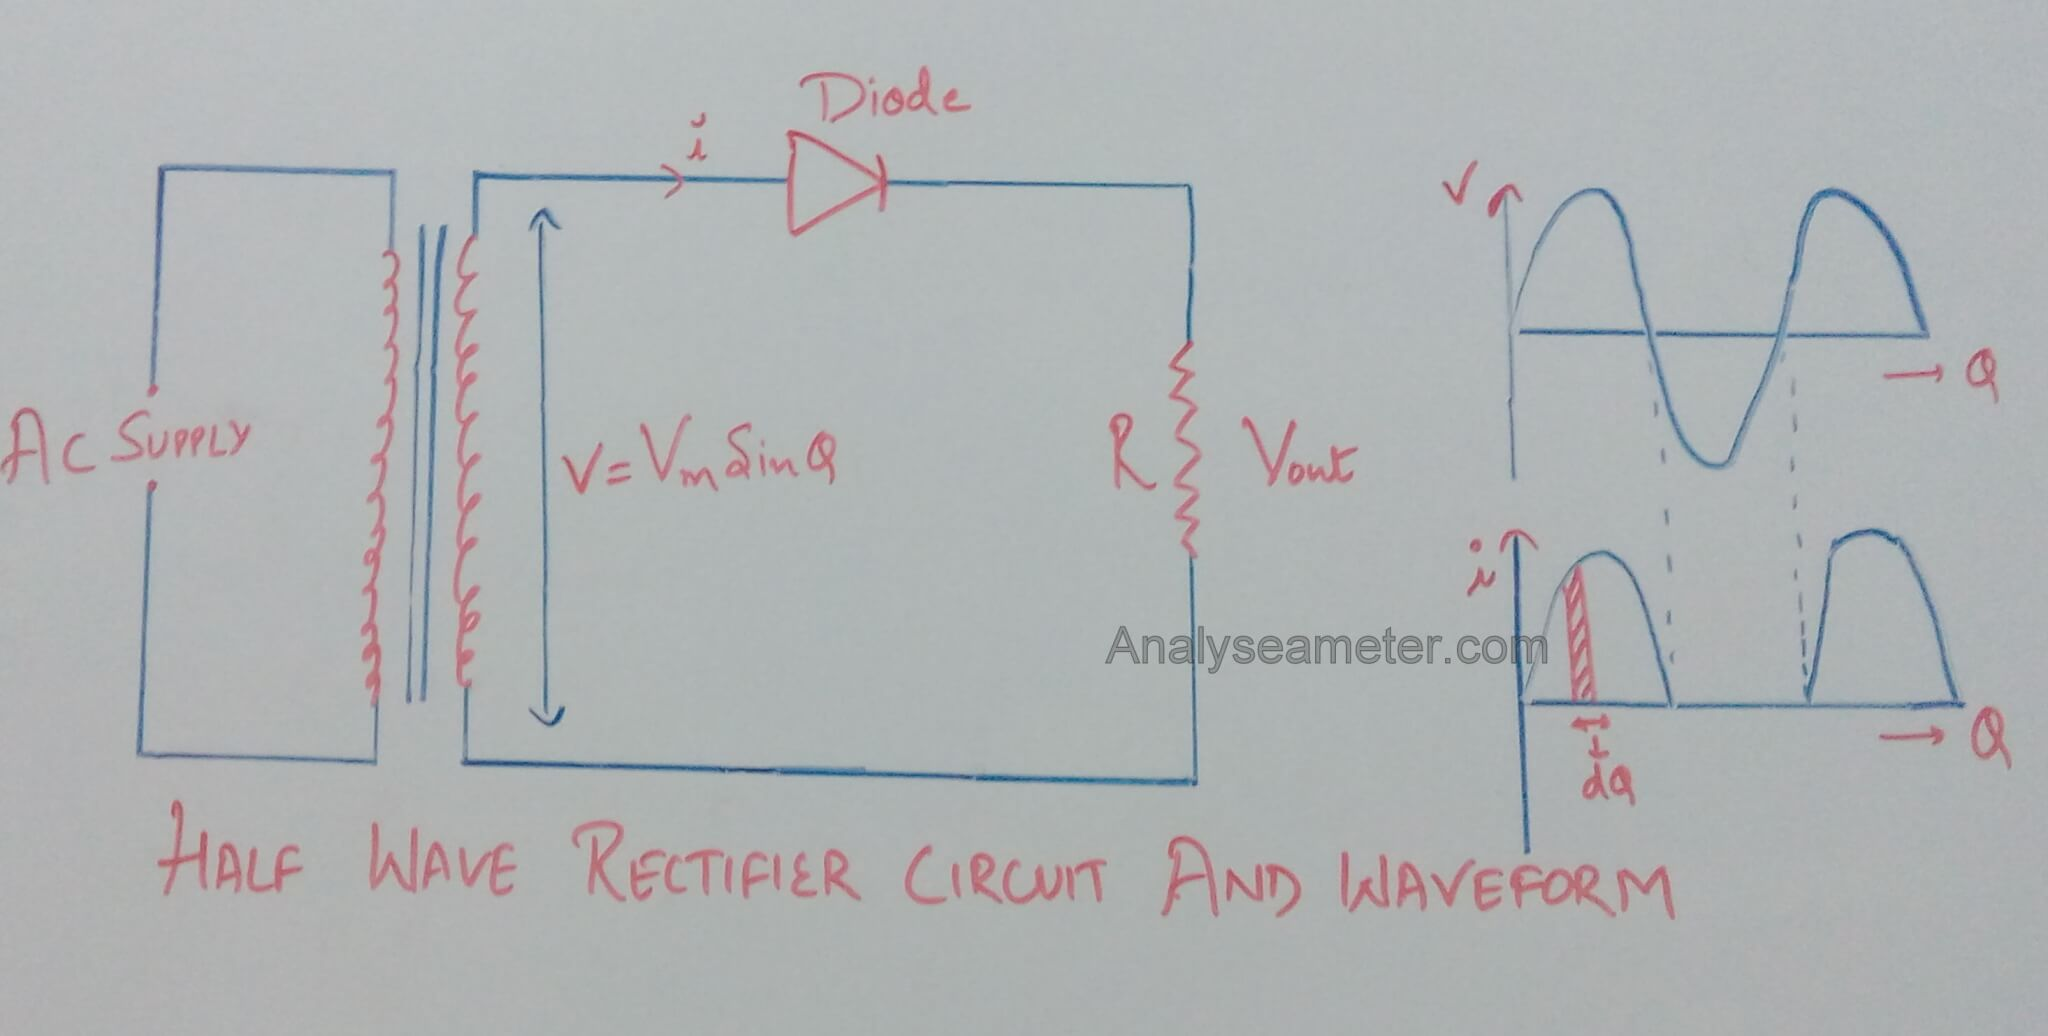 Half Wave Rectifier Efficiency Equation And Applications